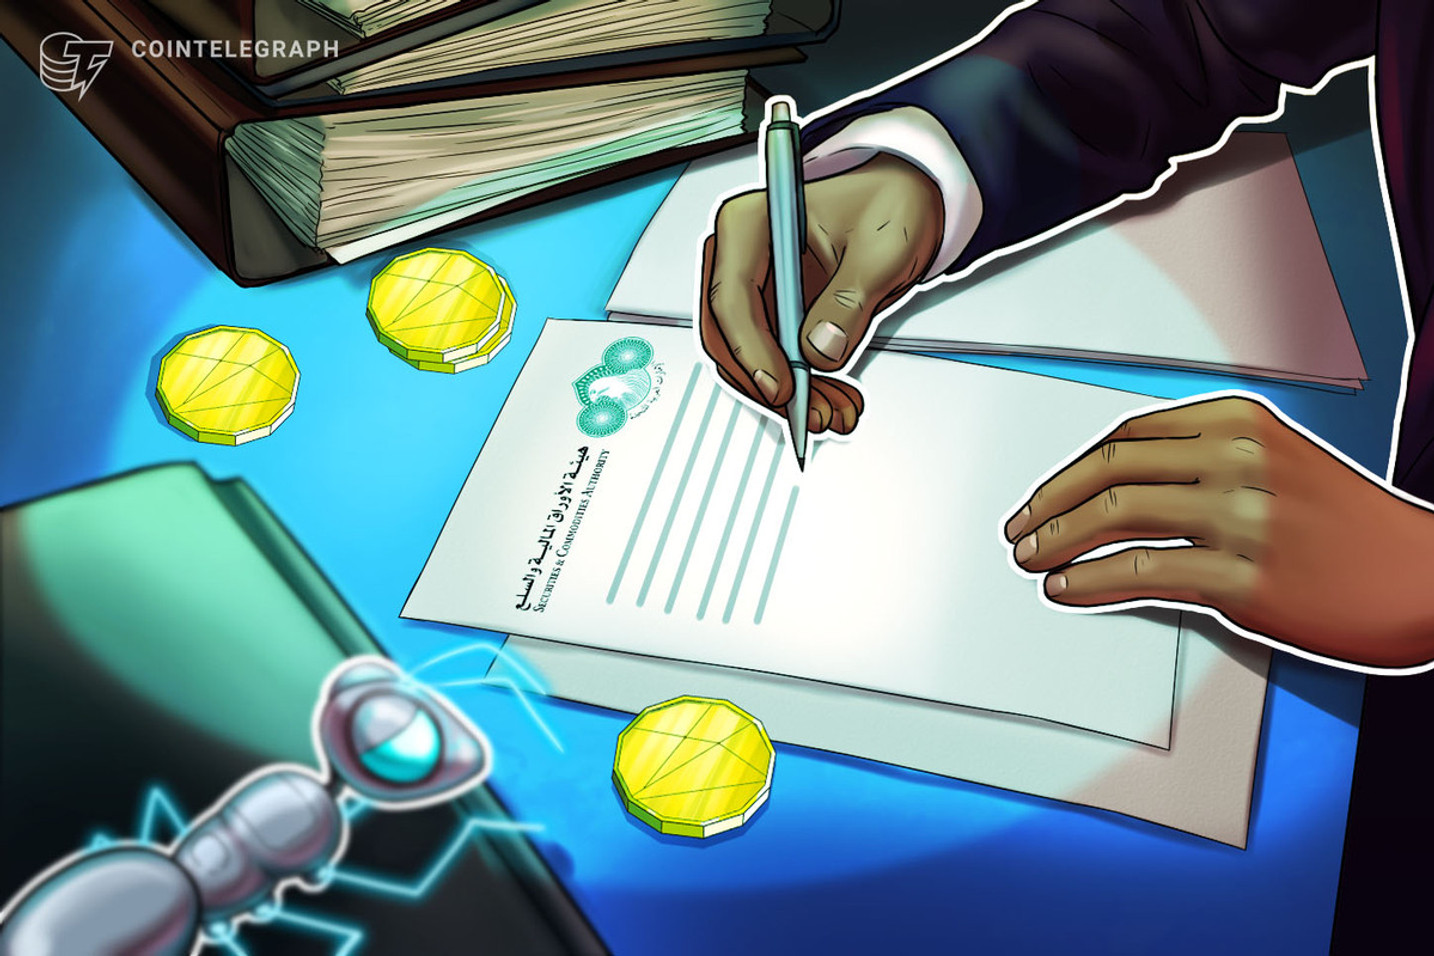 UAE Financial Watchdog Asks for Public Feedback on Crypto Regulation